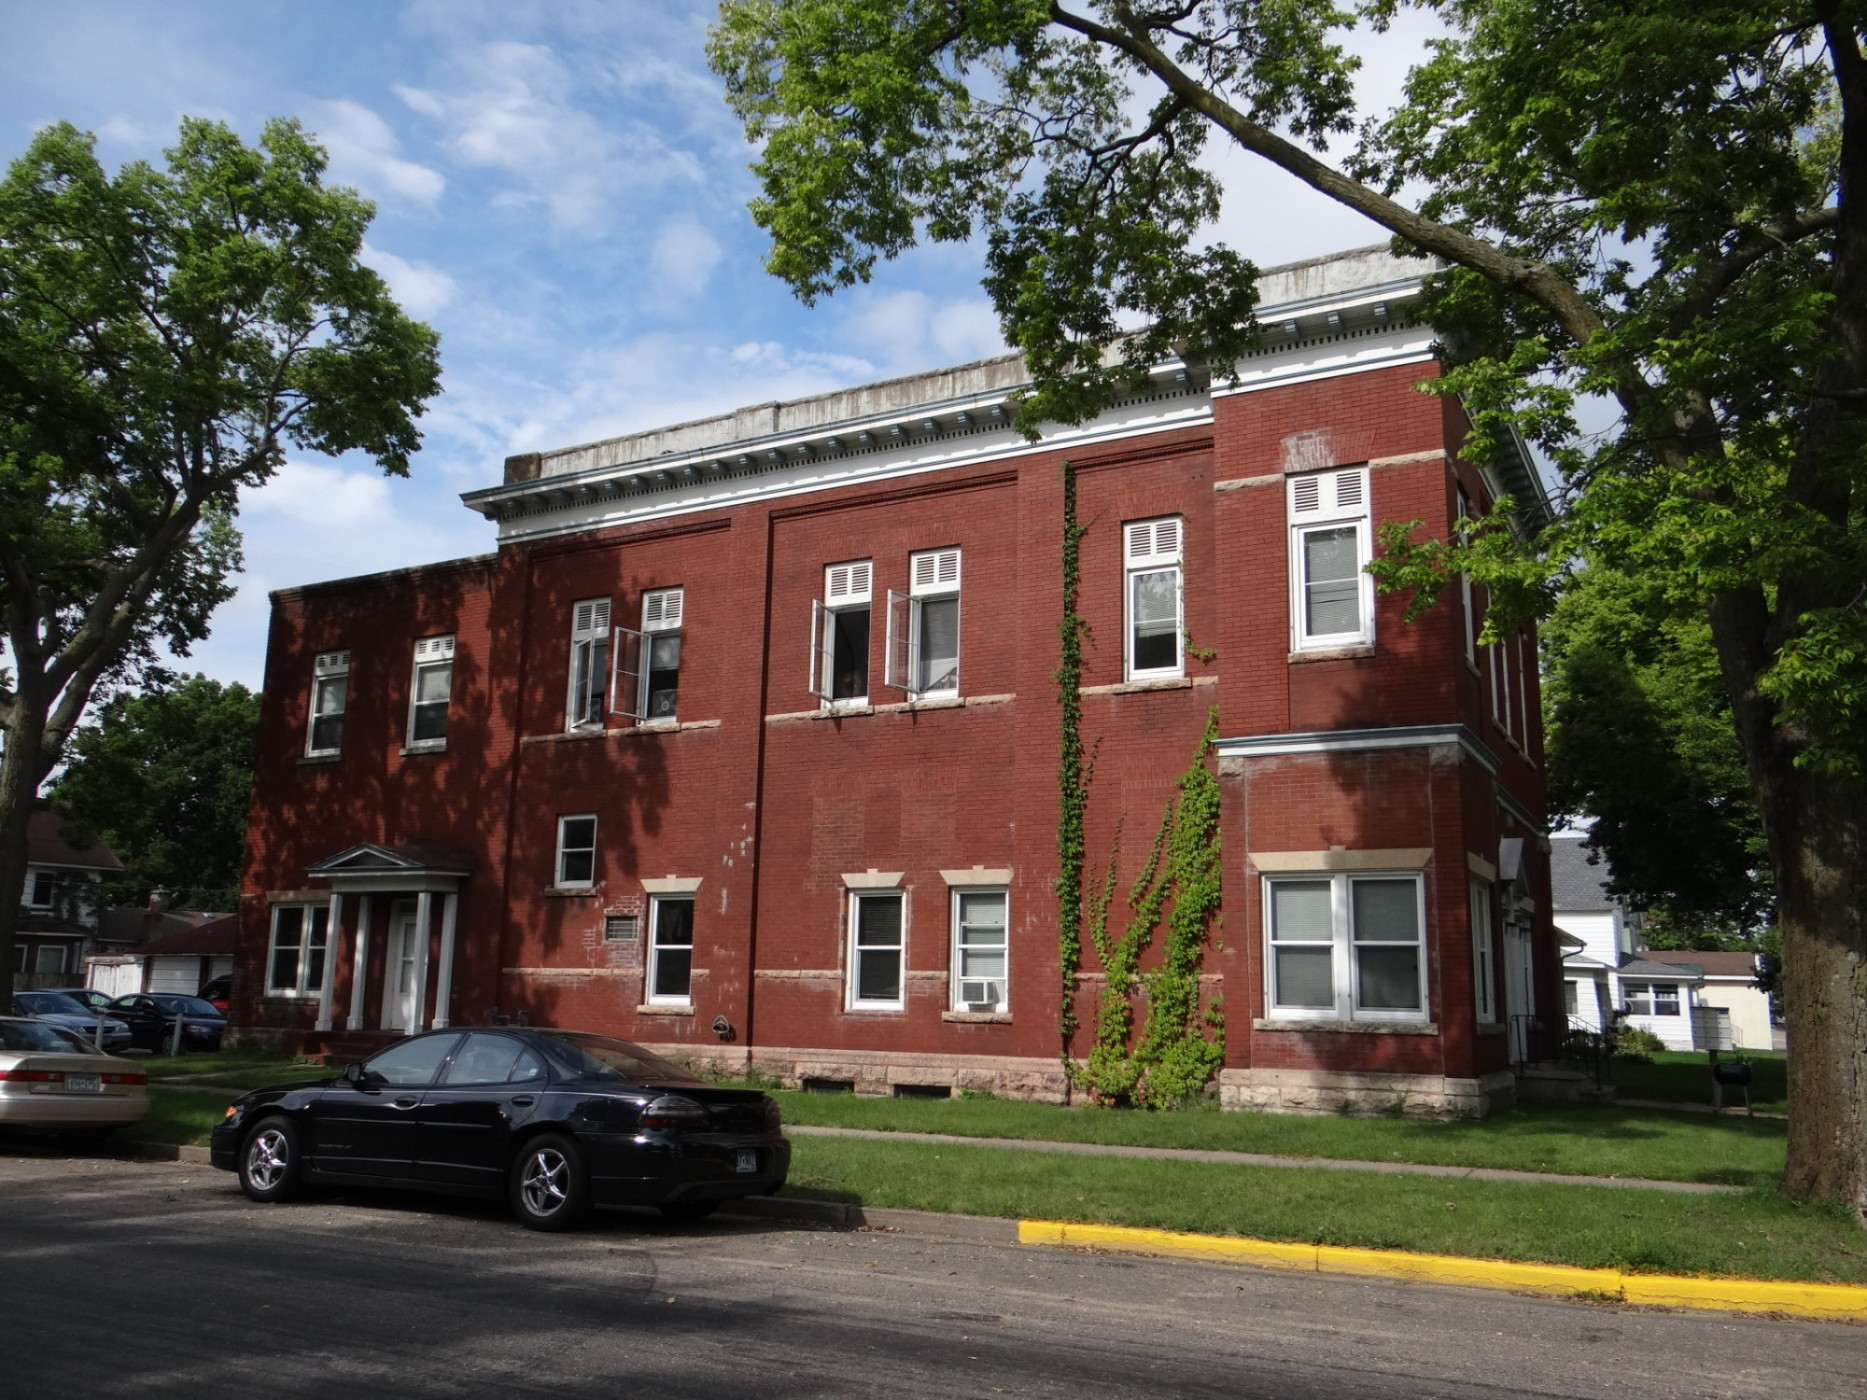 Winona state university three bedroom apartment with free heat 365 bedroom off campus student for 1 bedroom apartments winona mn